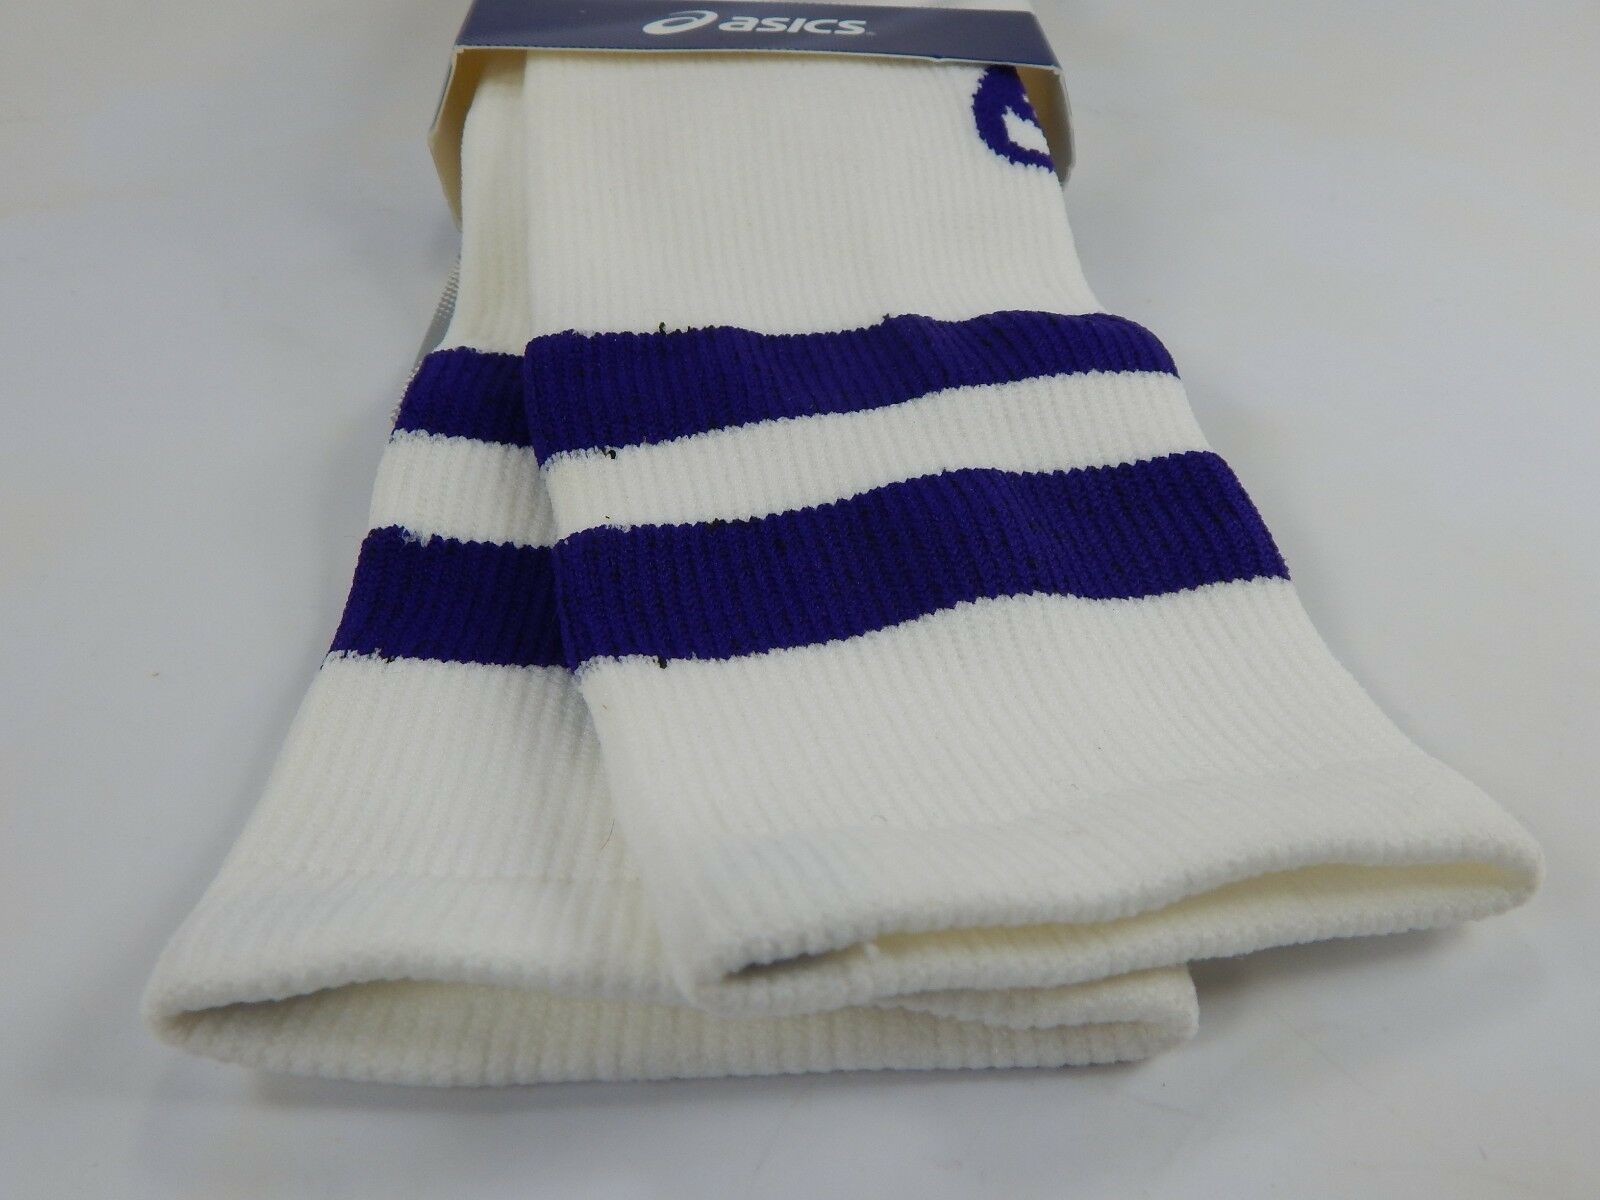 Asics Old School Chaussettes Hautes Genoux TAILLE S BLANC Femmes Taille: 6-7.5